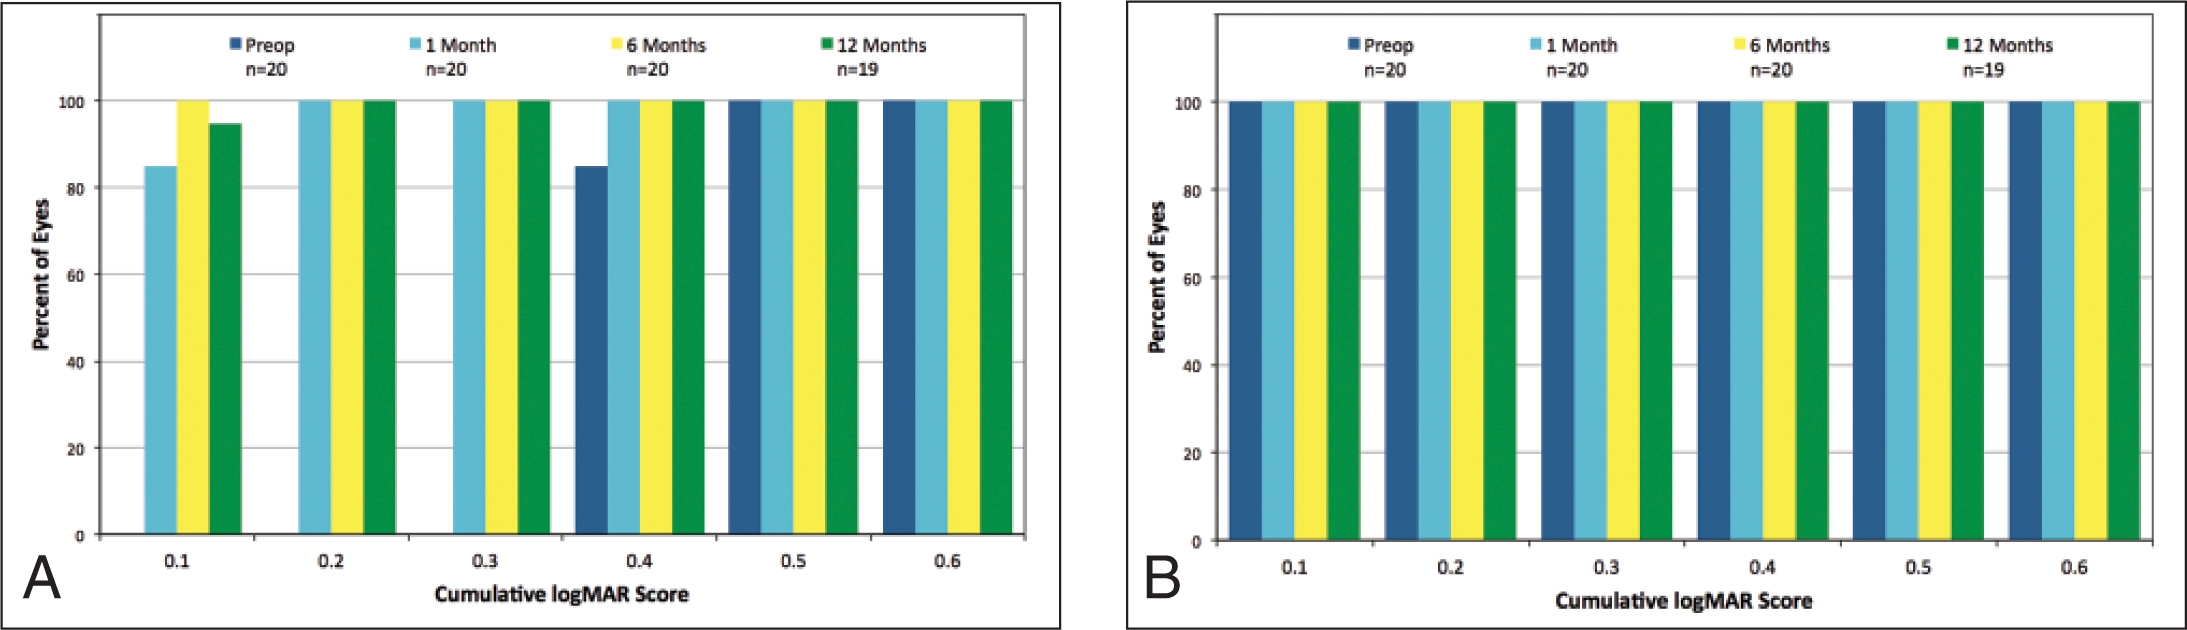 Binocular uncorrected (A) near and (B) distance visual acuity of the implanted eye relative to pretreatment acuity. Binocular acuities were not recorded before 1 month postoperatively.